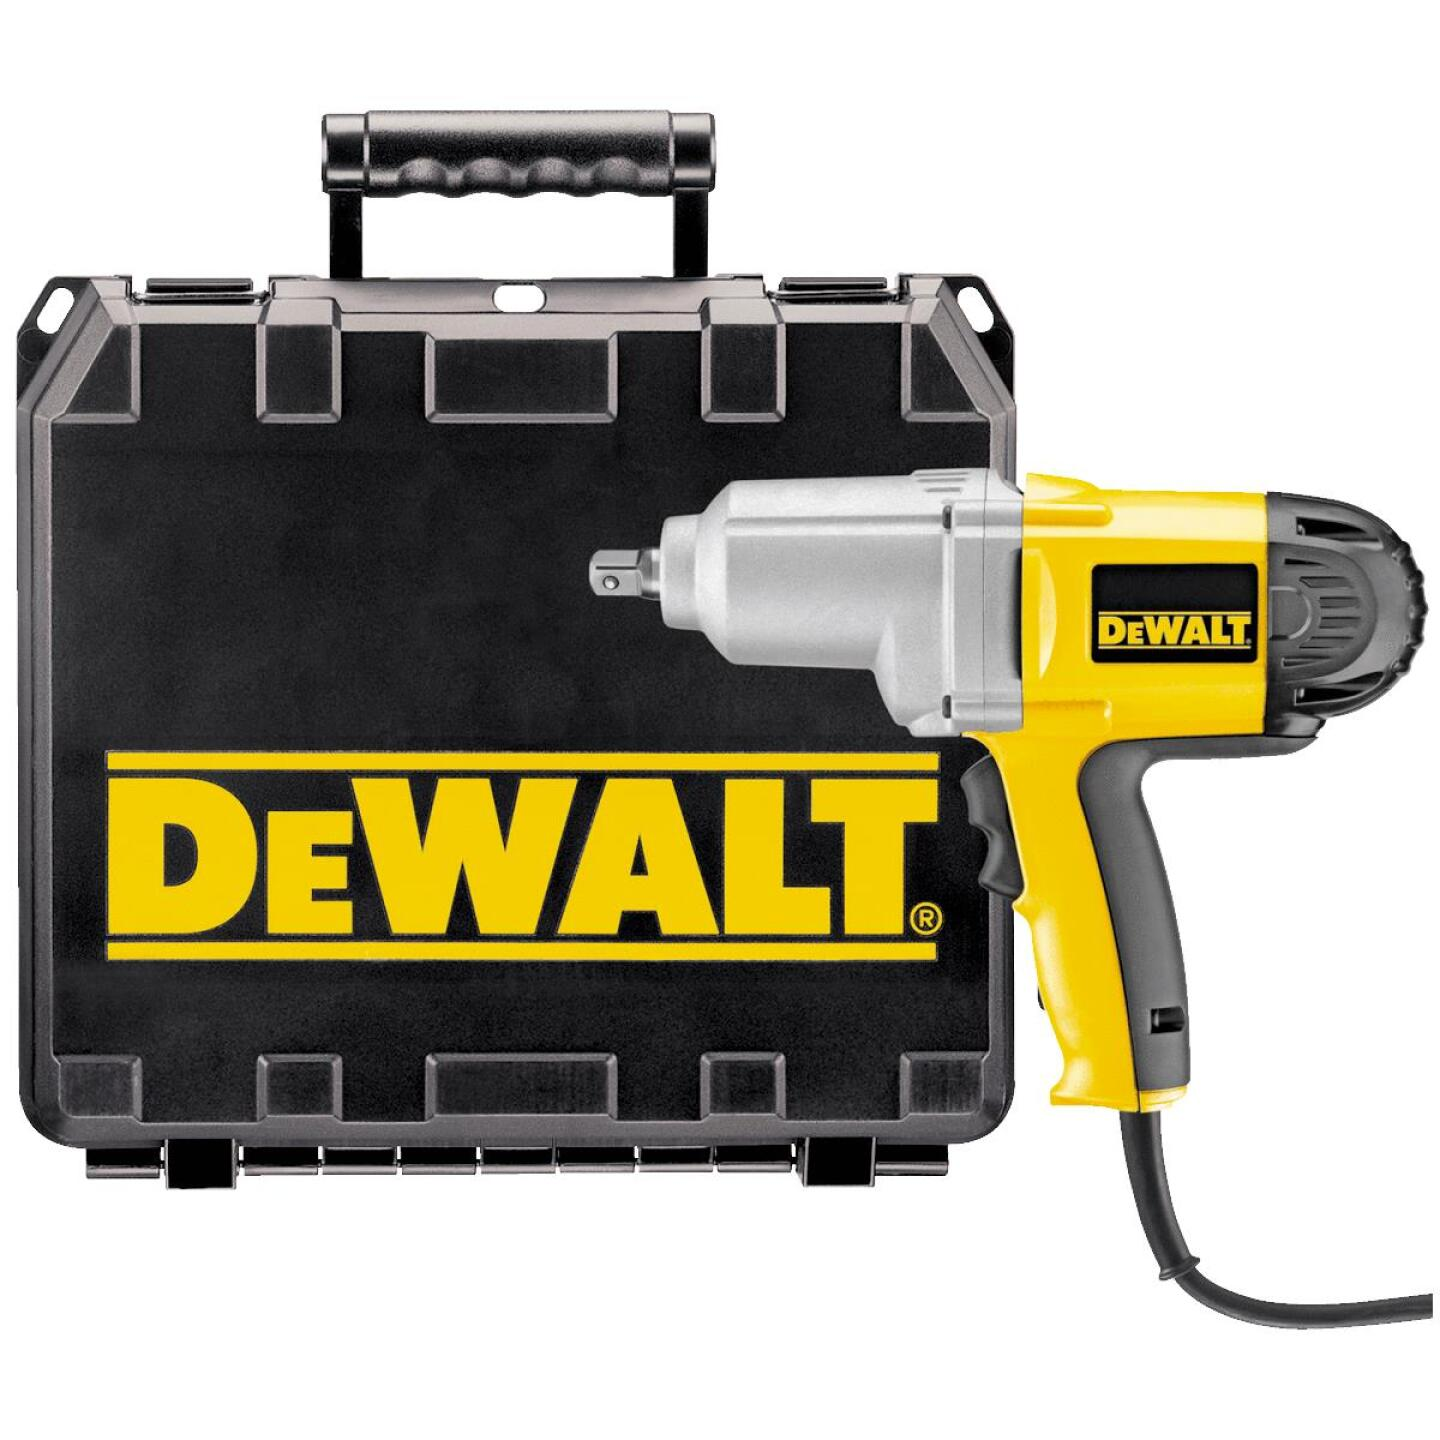 DeWalt 1/2 In. Impact Wrench with Detent Pin Anvil Image 2